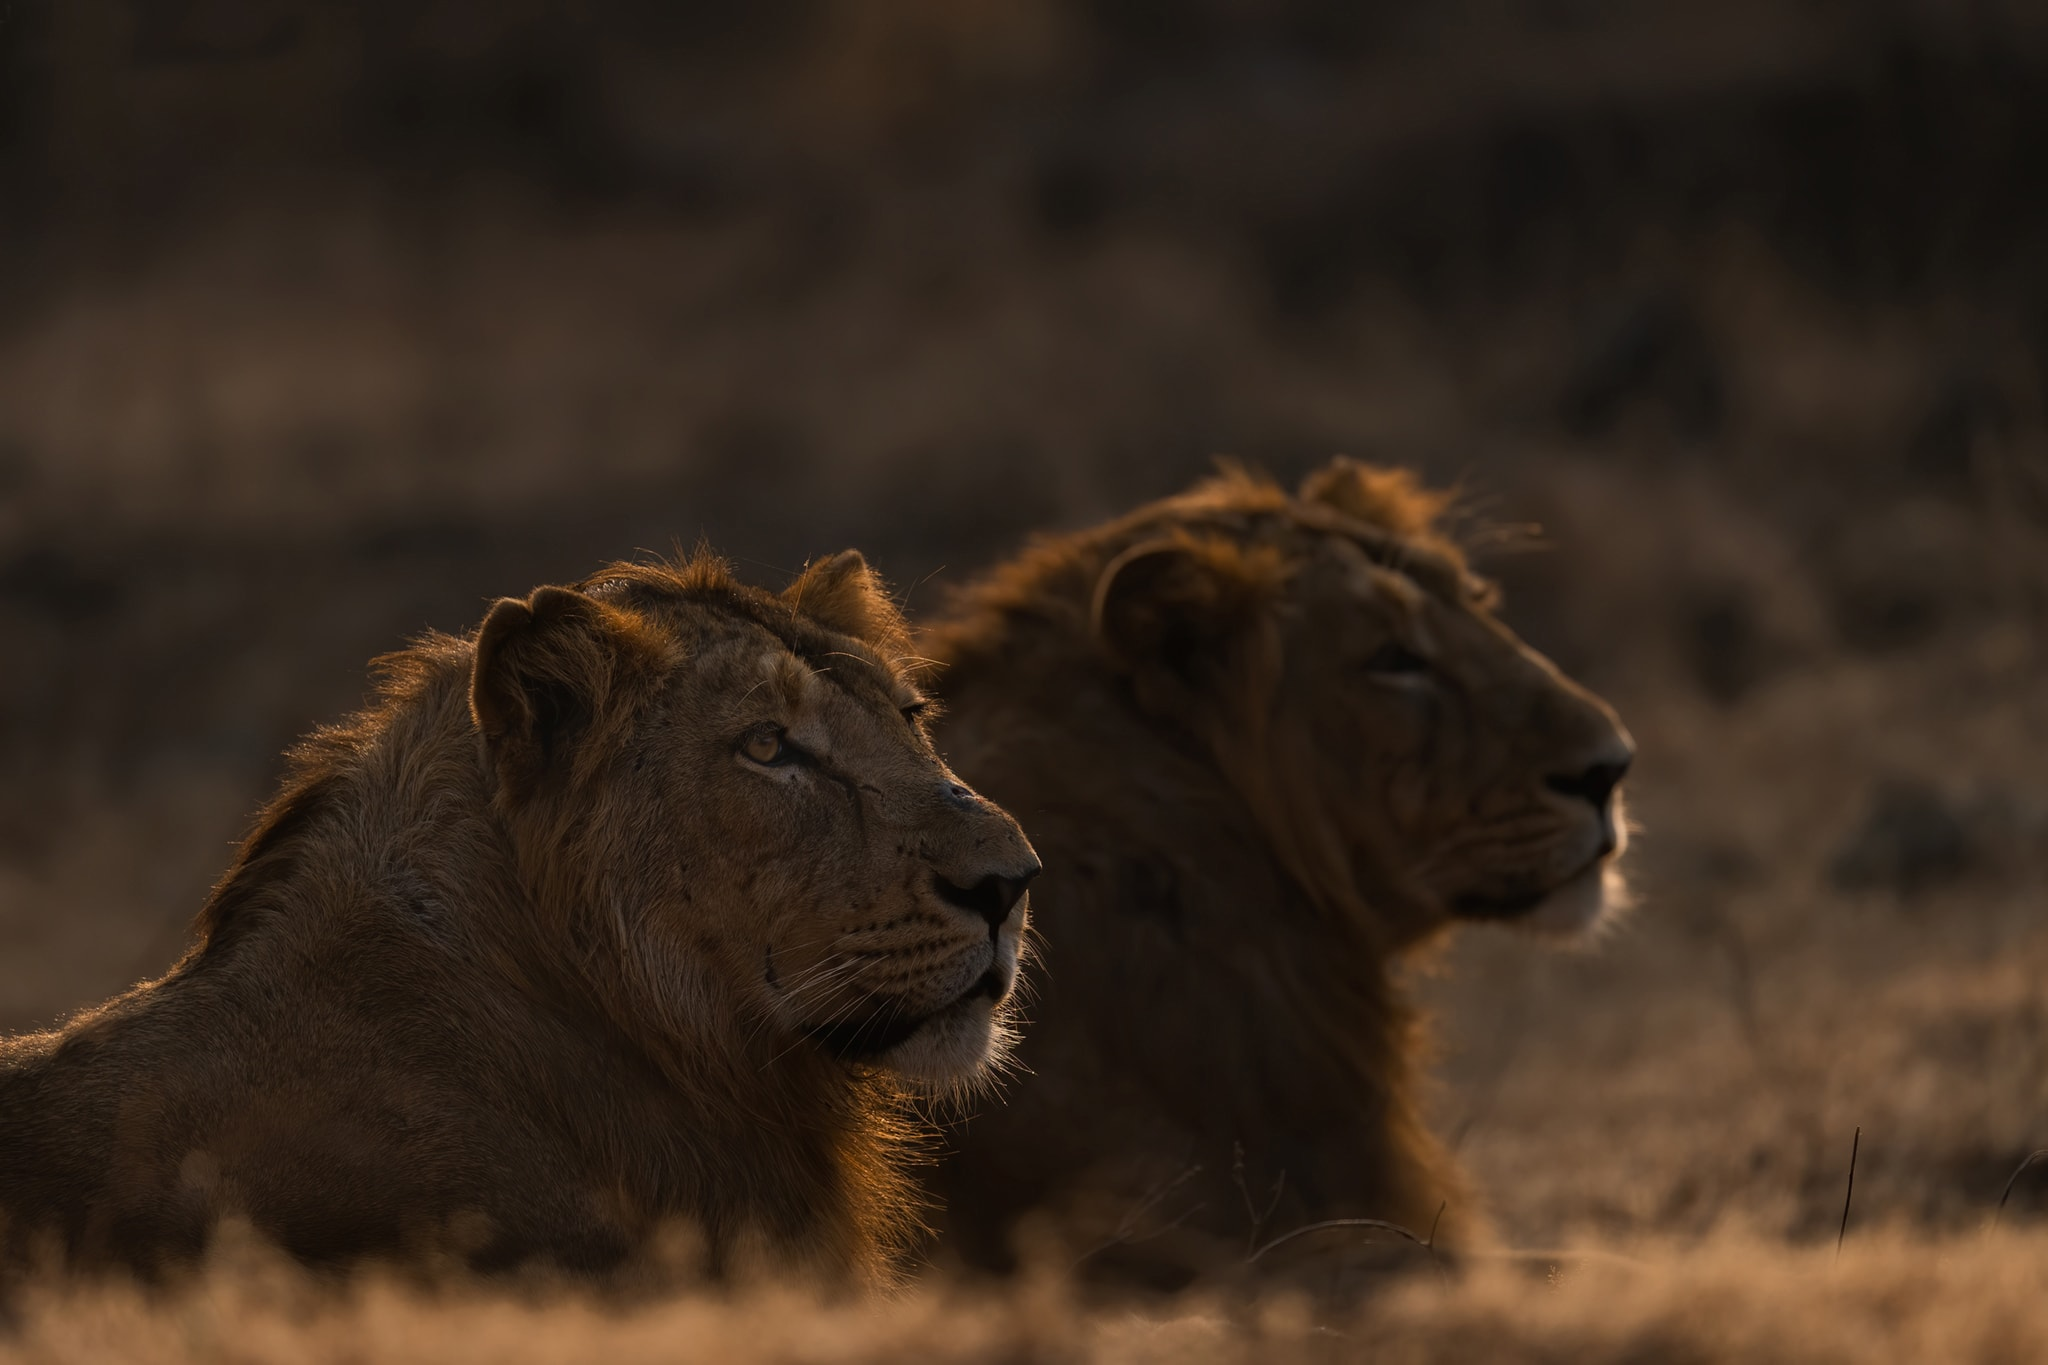 Most coalitions comprise two lions of the same age who are unrelated. They don't divide eating and breeding opportunities equally, and the dominant one takes more than his fair share. Photo: Vipul Ramanuj